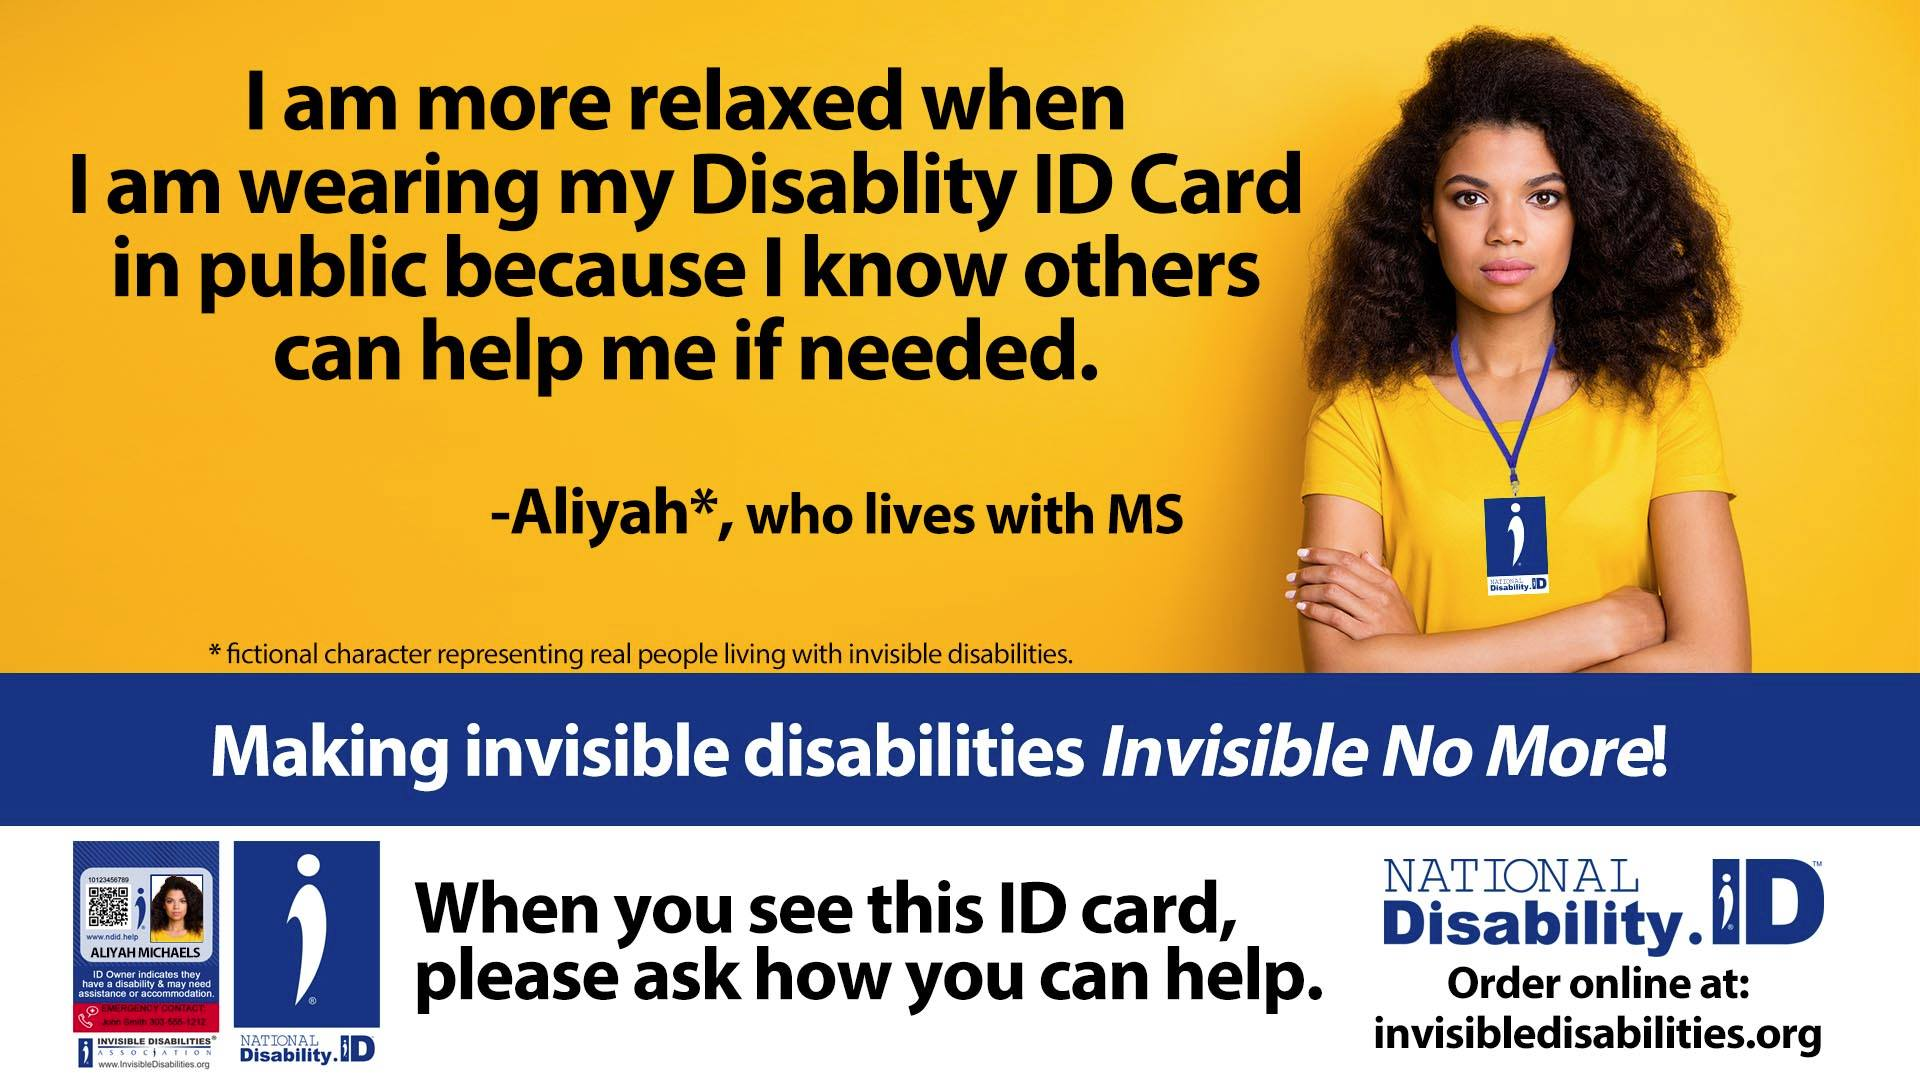 Disability ID Card - National Disability ID initiative - Multiple Sclerosis MS - Invisible Disabilities Association